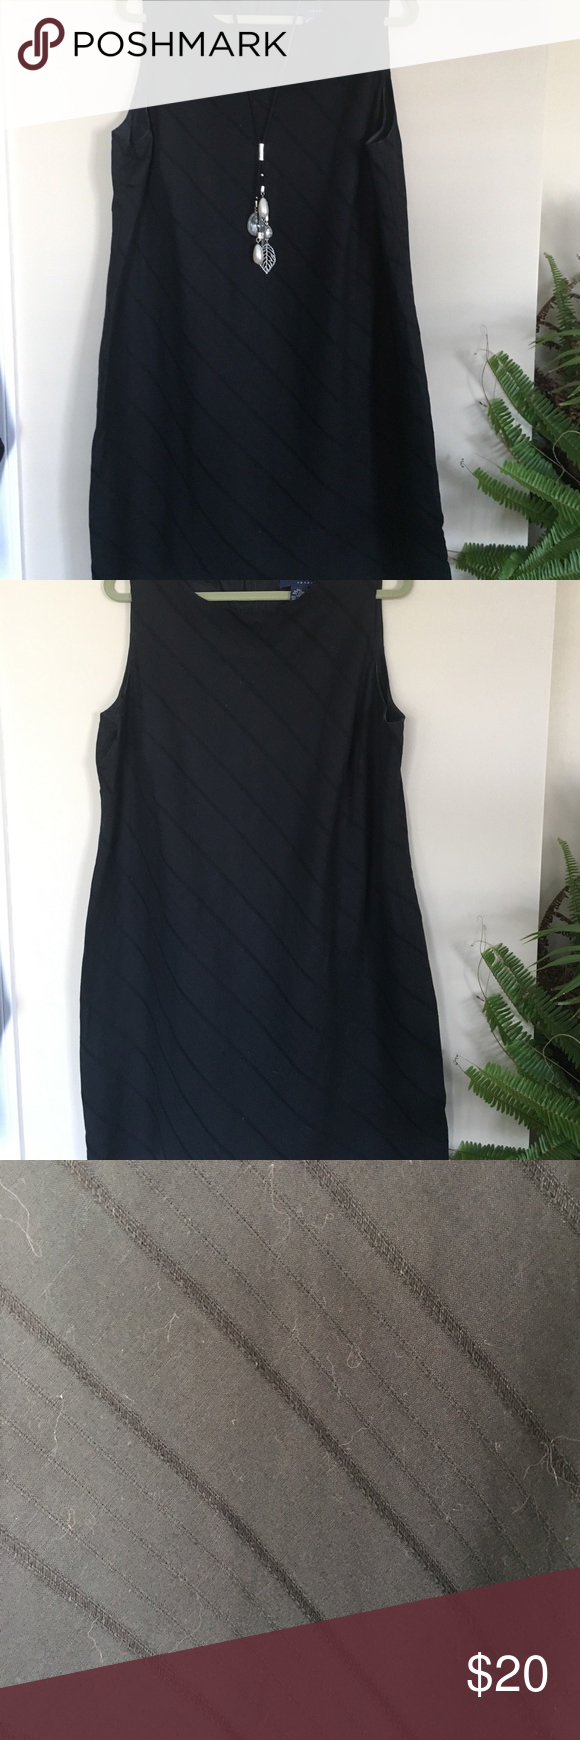 """Black Linen Sheath Classic Diagonal Patterned Black Linen Sheath. Classic look for an evening on the town or special occasion. Fully lined & is 38"""" long(from top of shoulder). Lane Bryant Dresses"""